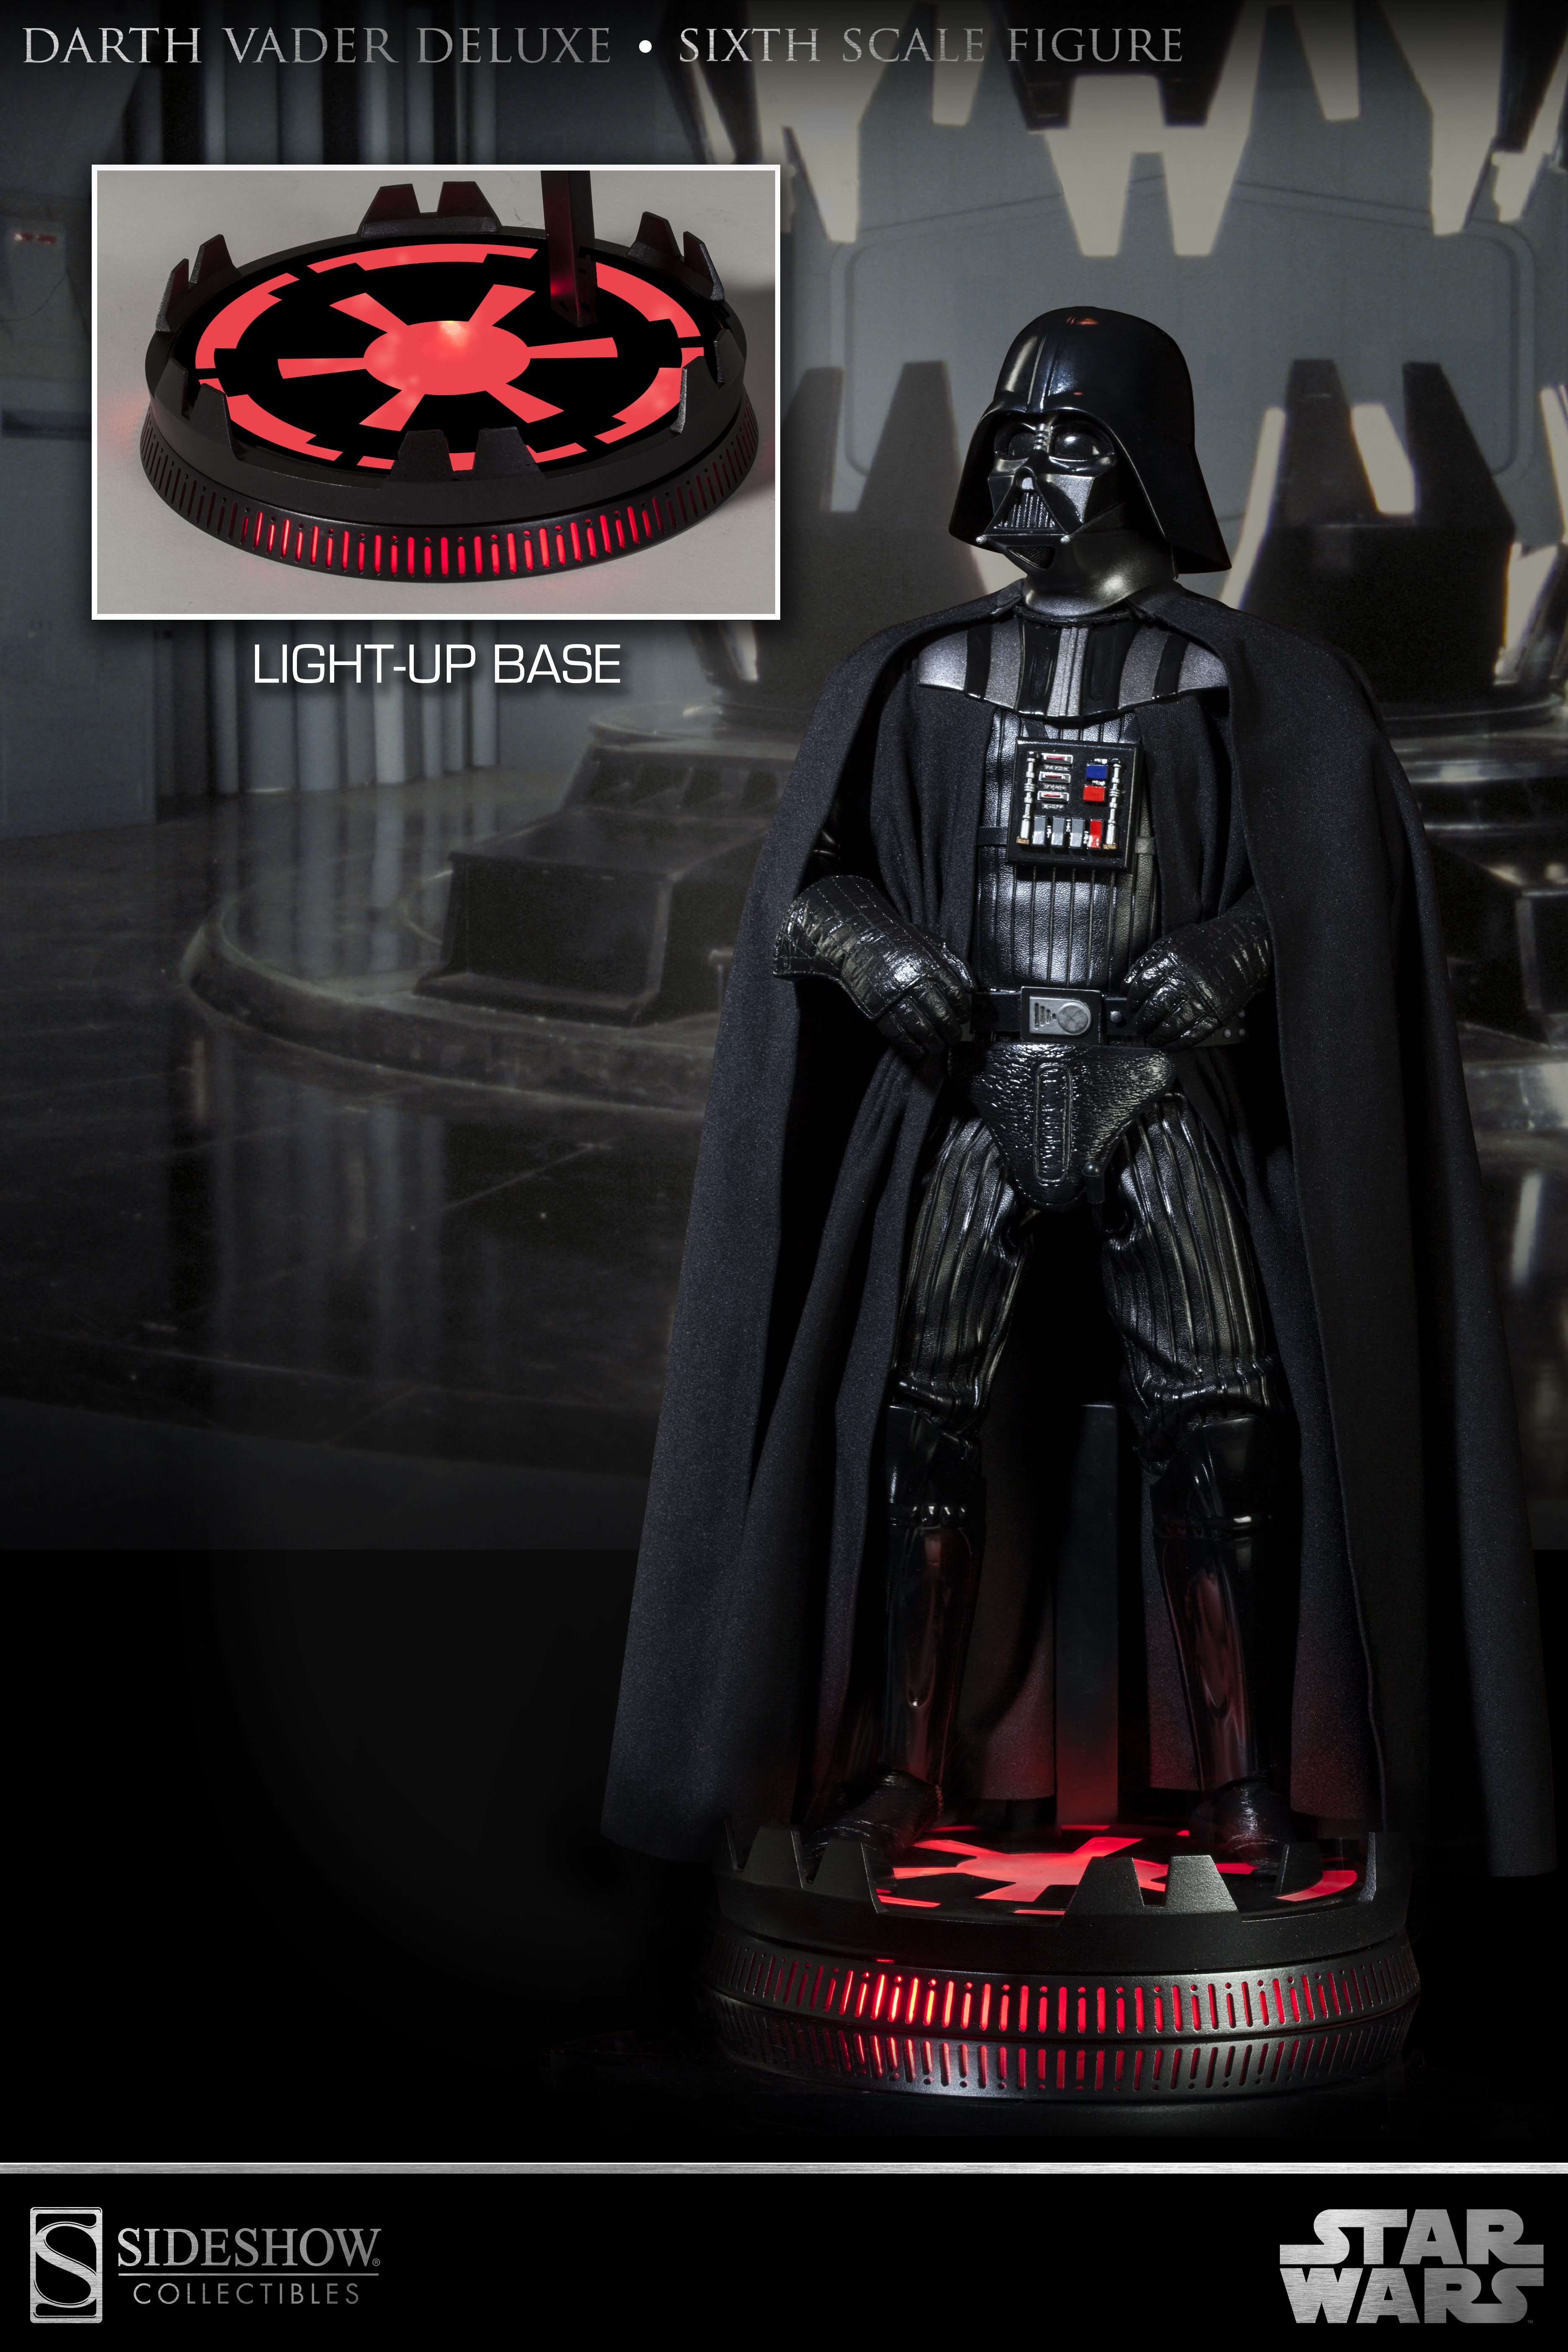 Sideshow Collectibles Announces The Most Detailed Darth Vader Figure Ever